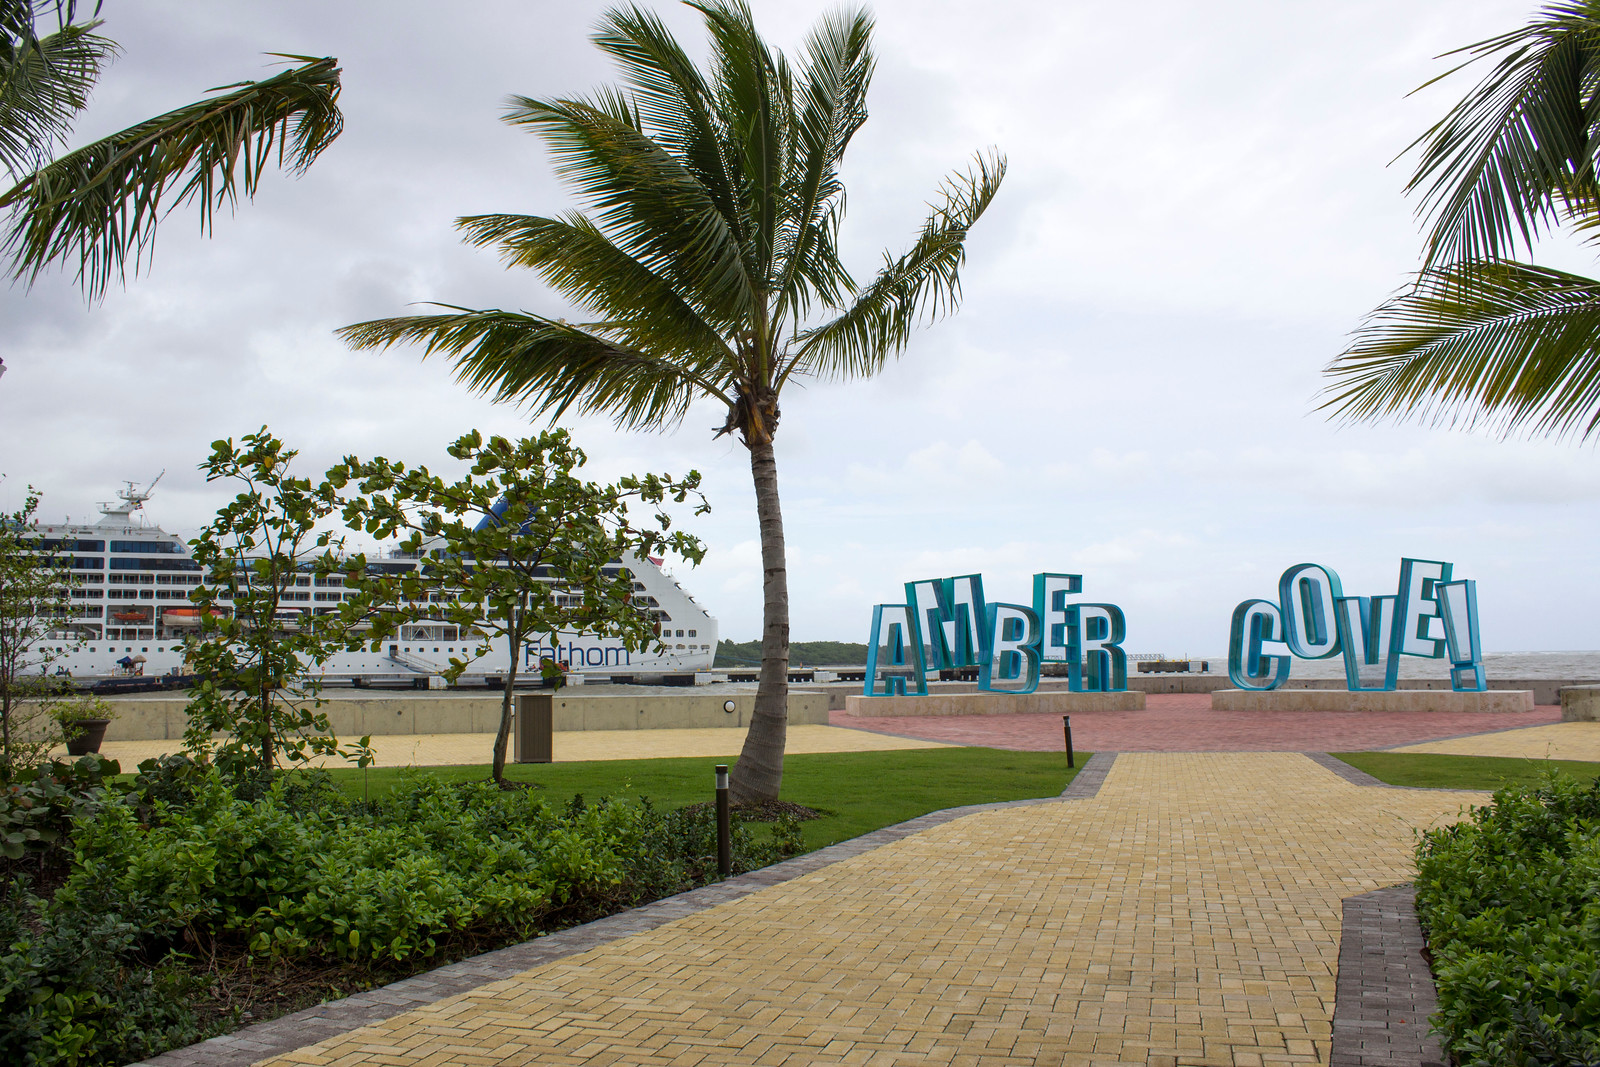 Amber Cove Dominican Republic Cruise Ship Port Guide - Amber Cove Sign by day